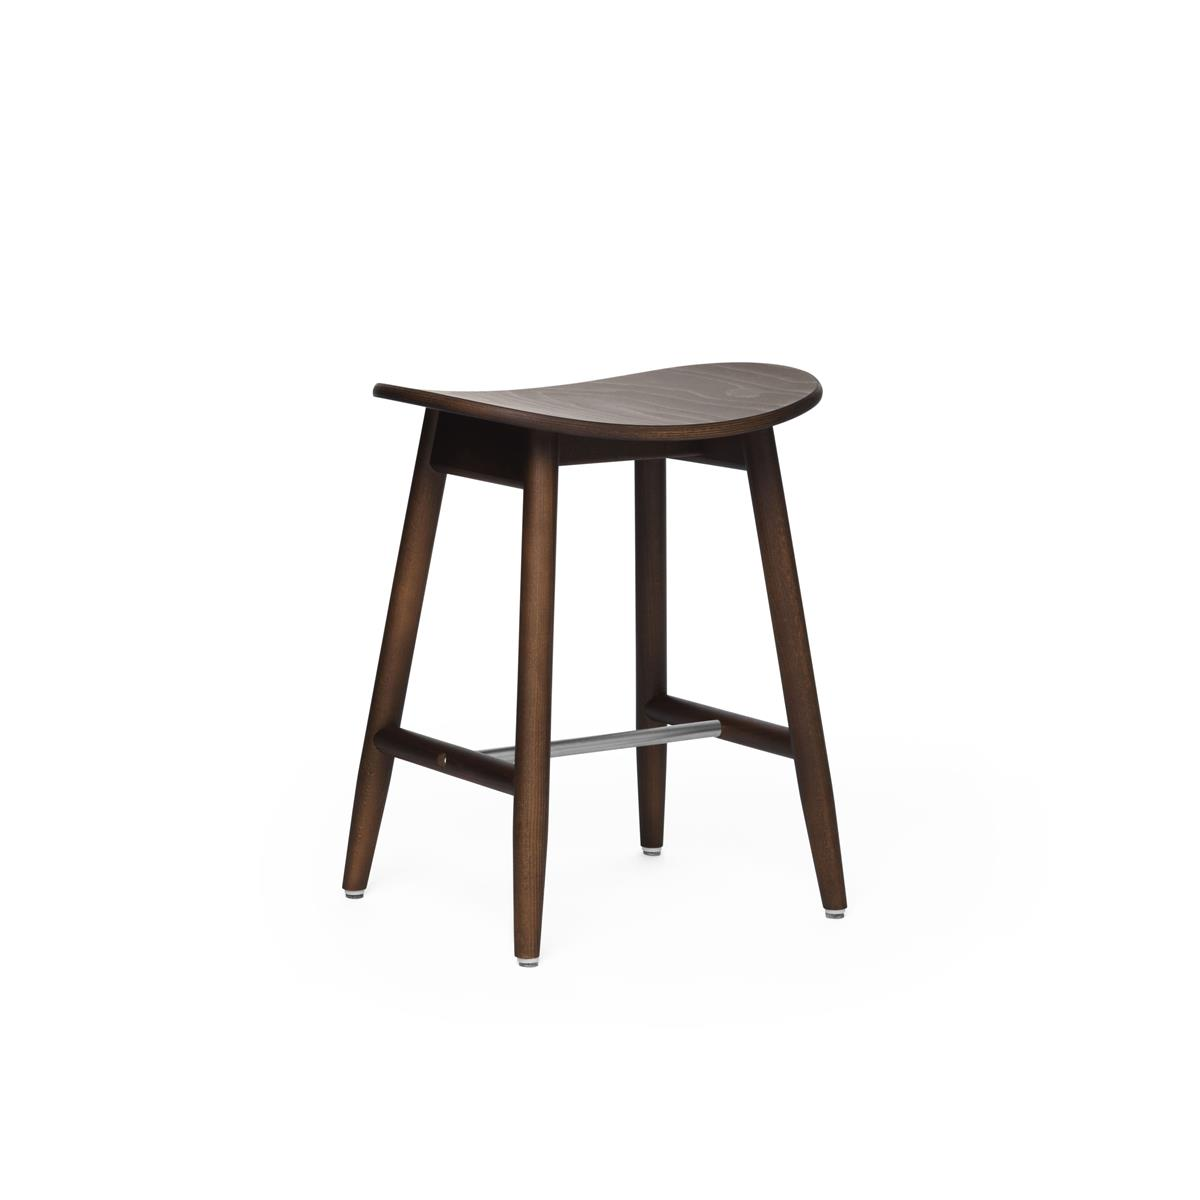 Icha Stool - Walnut Stained